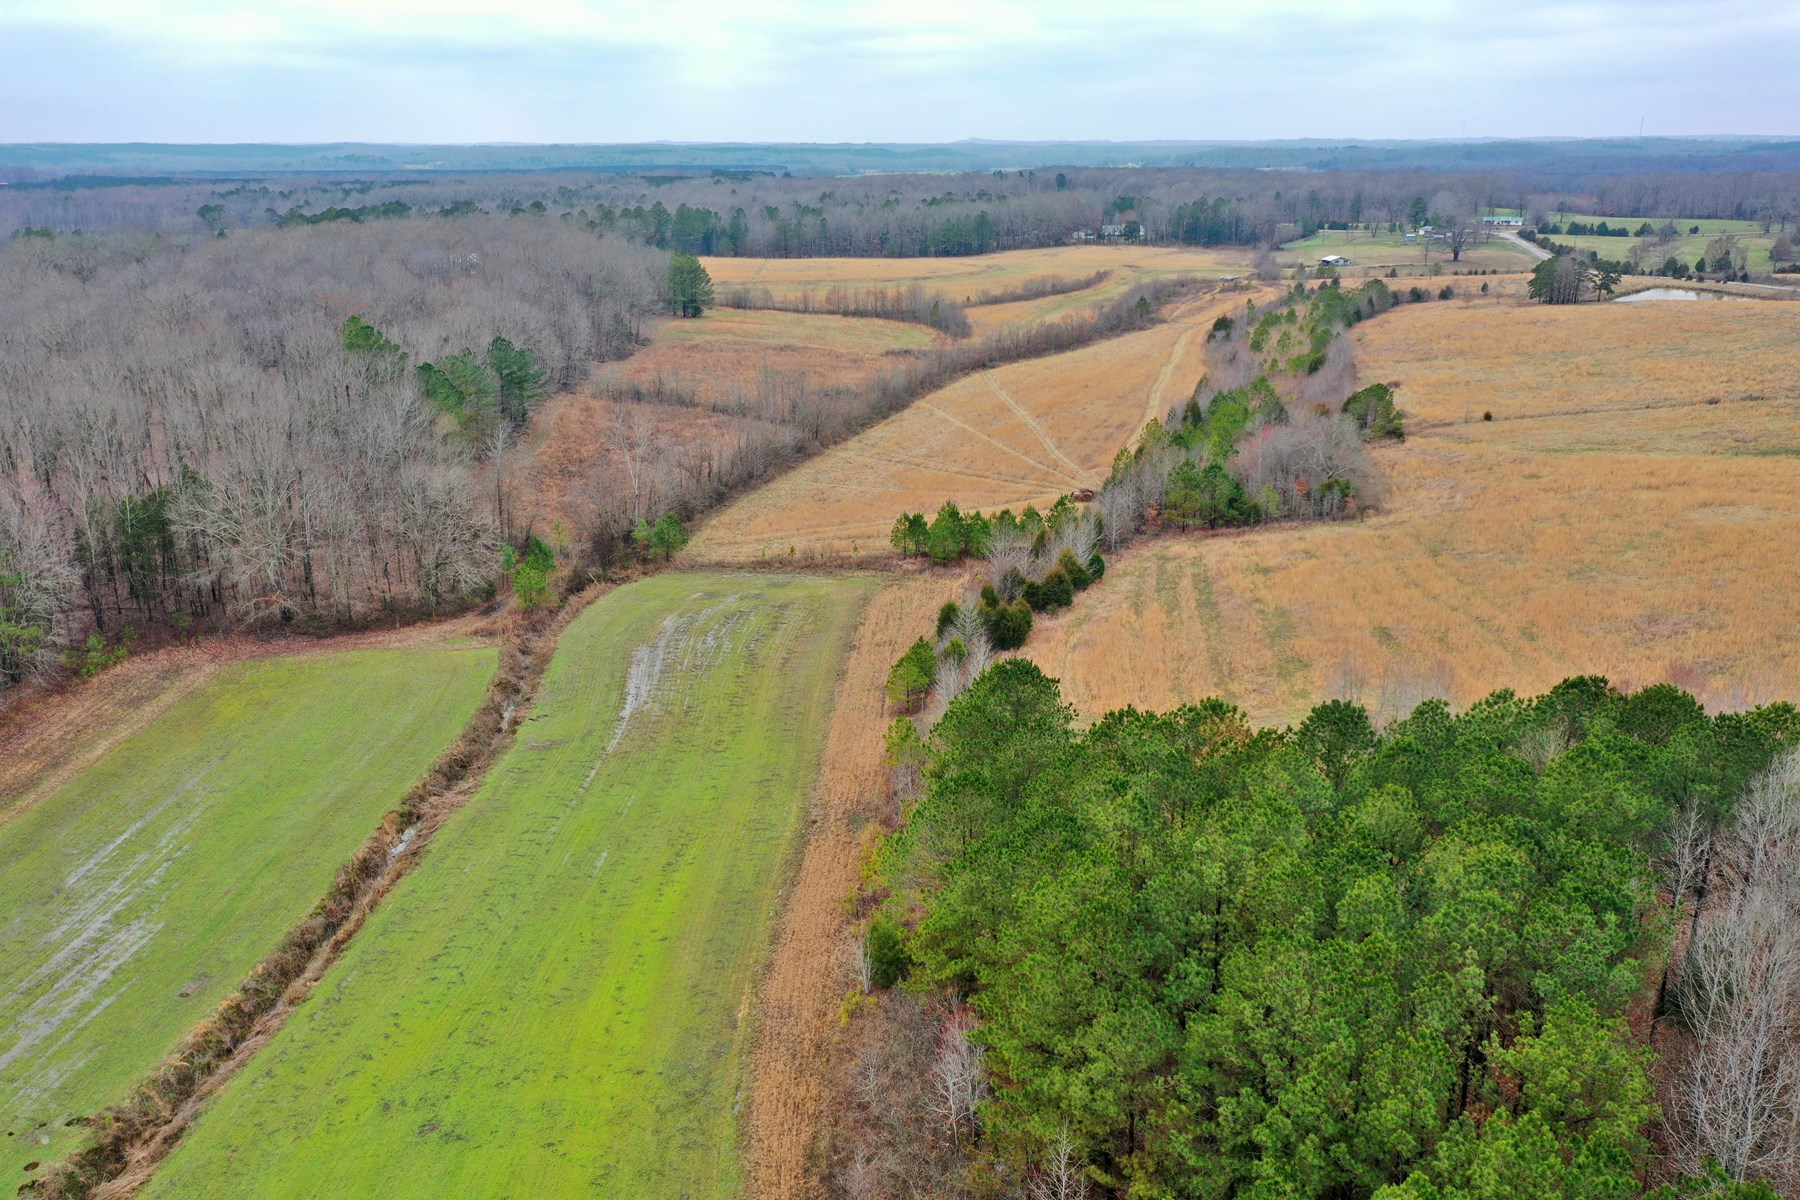 West Tn Farm For Sale!